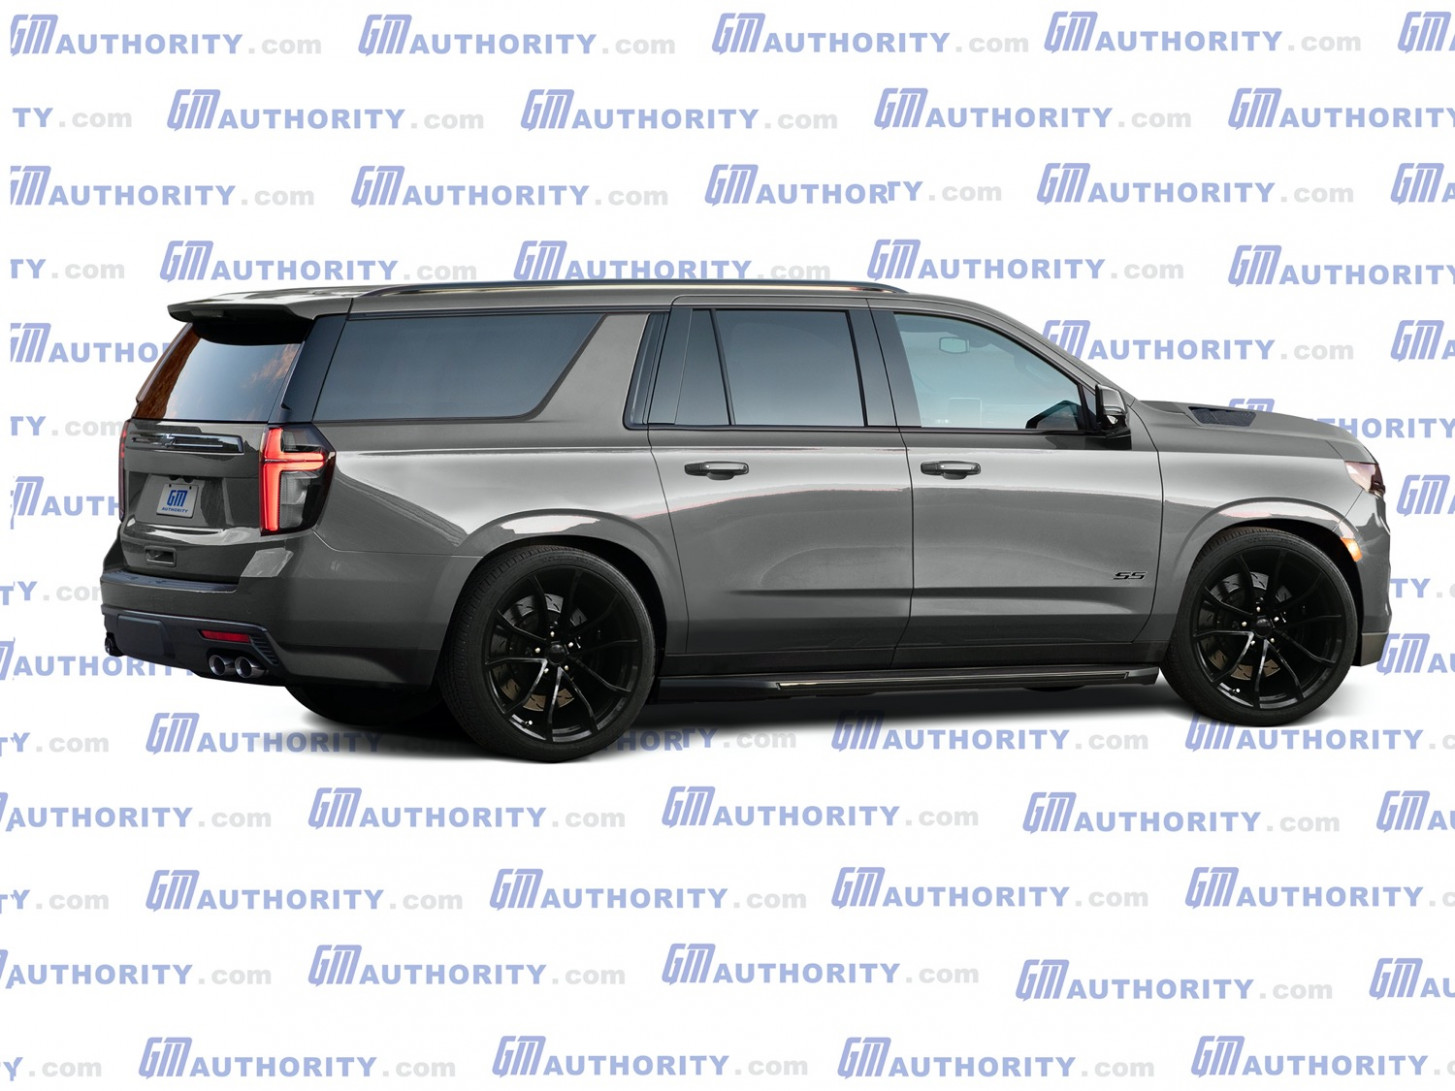 Price and Release date When Will The 2022 Chevrolet Suburban Be Released